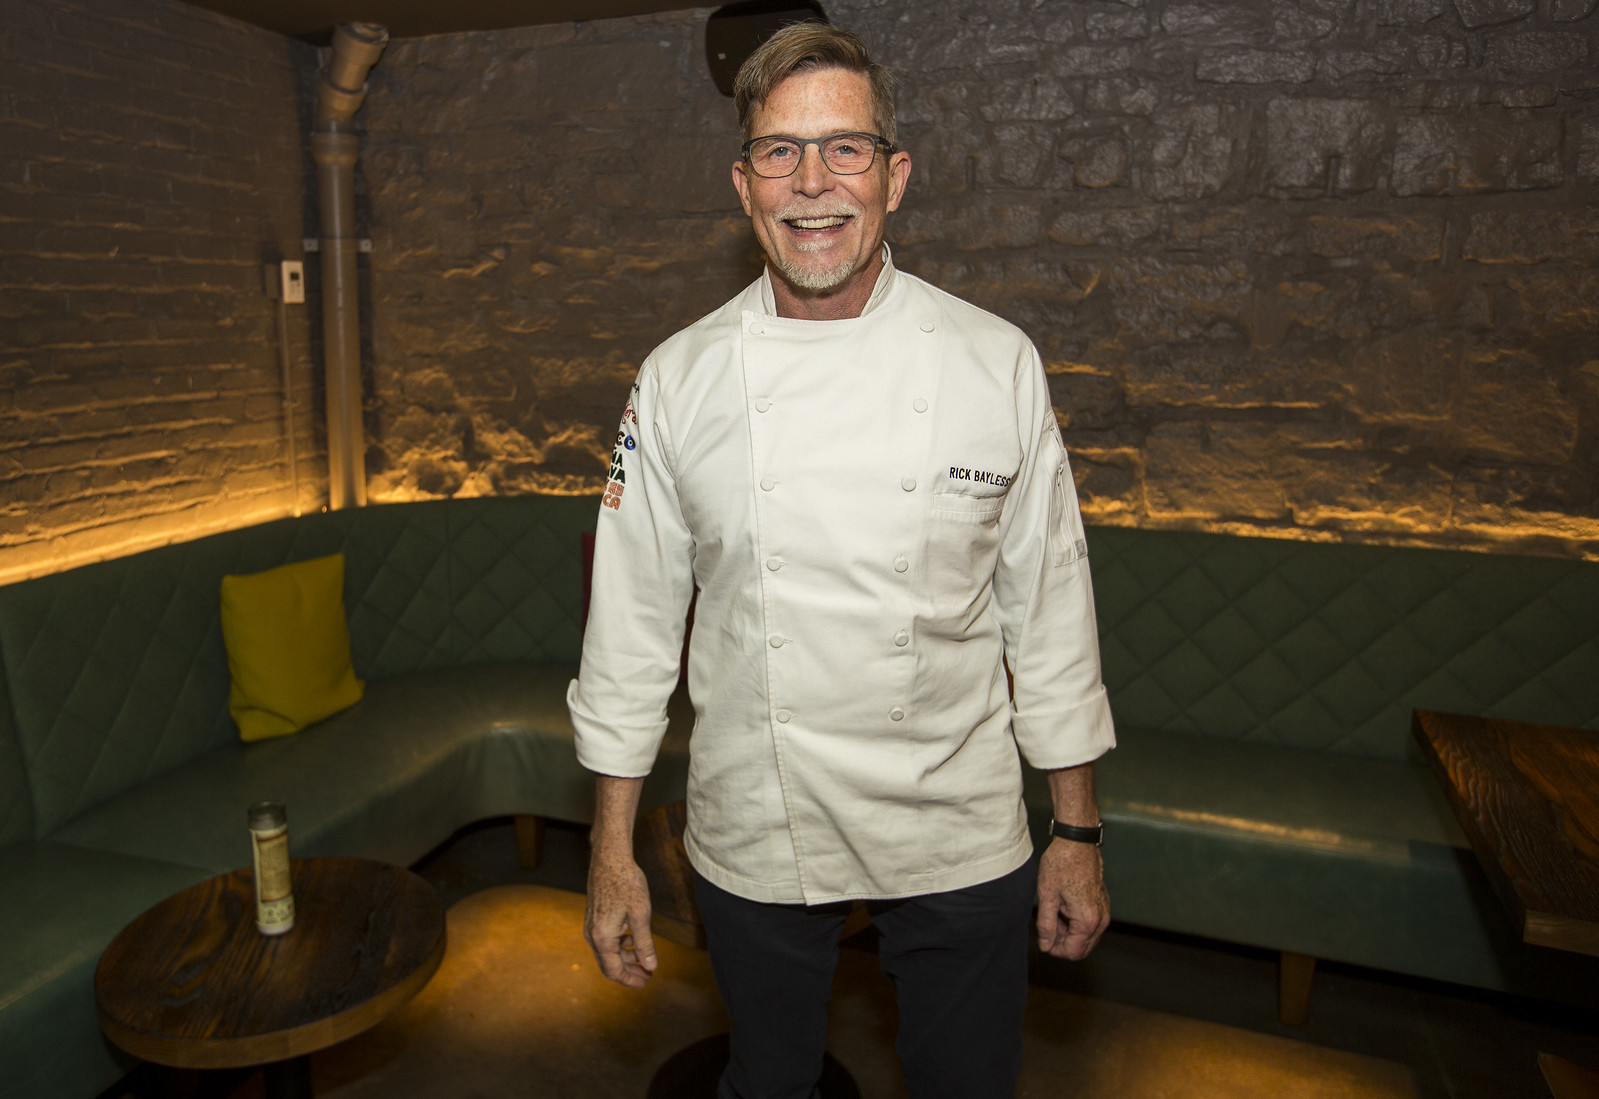 A smiling chef wearing a white chef's shirt.